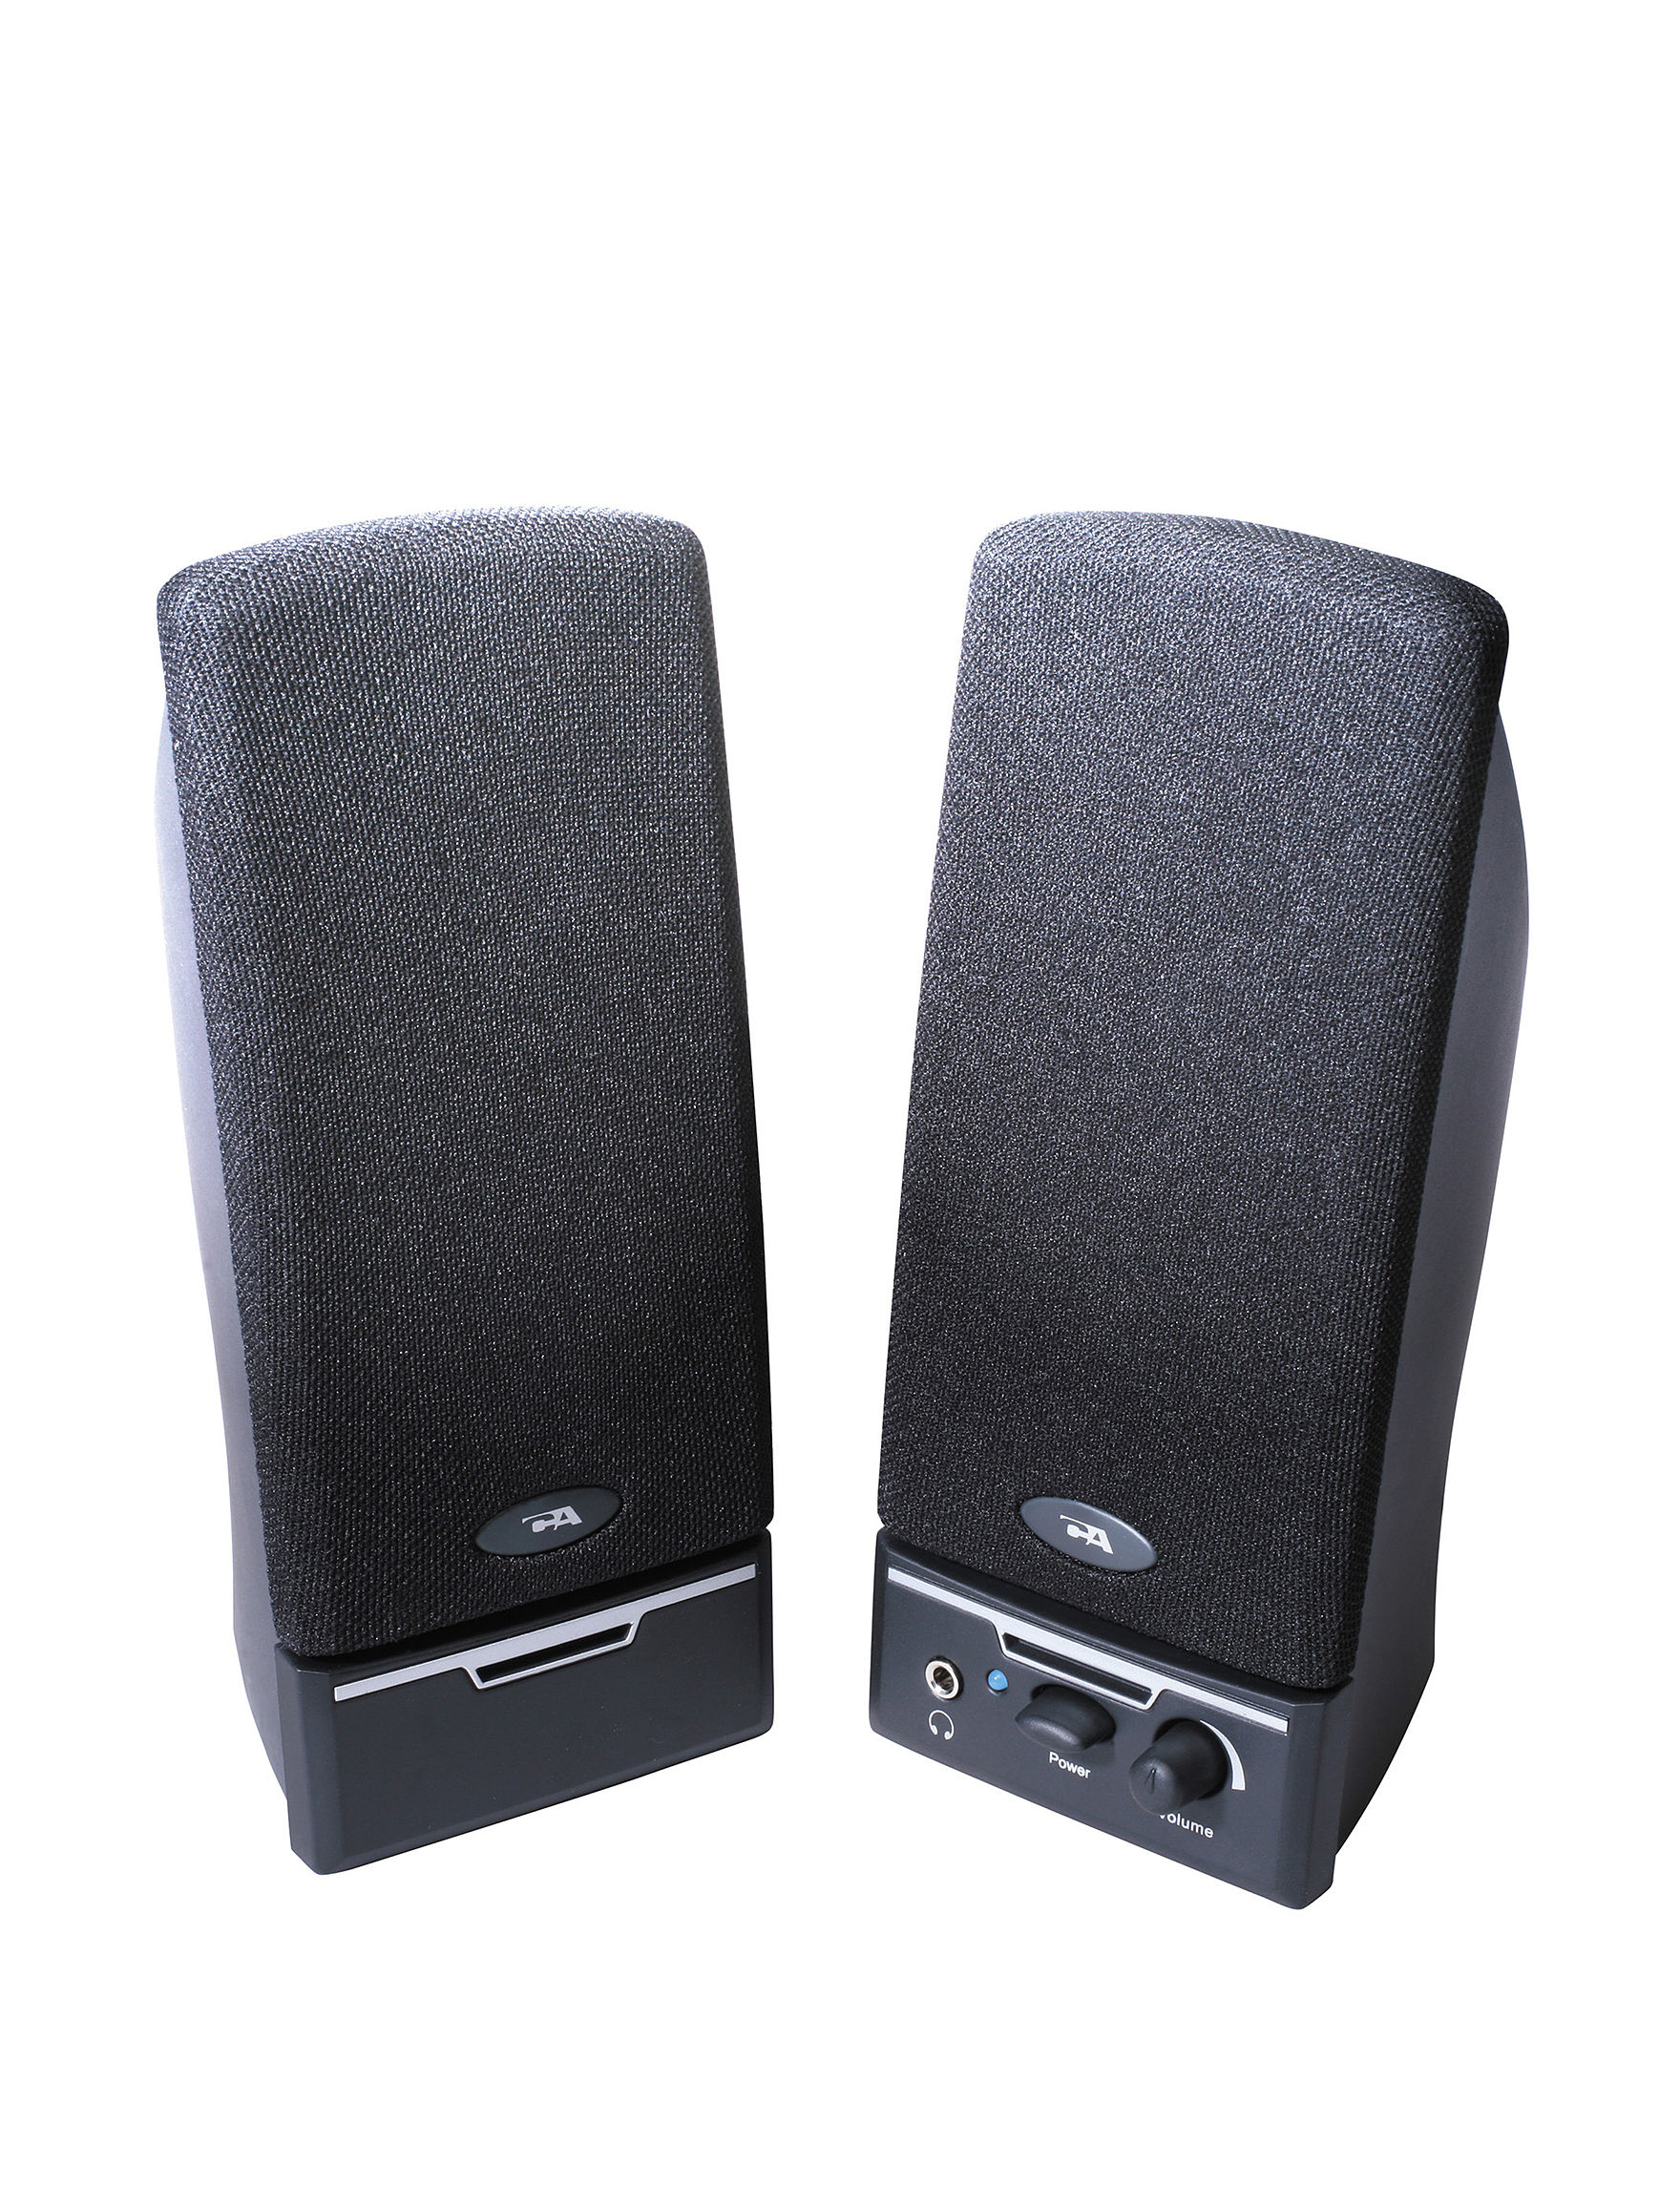 Cyber Acoustics Black Speakers & Docks Home & Portable Audio